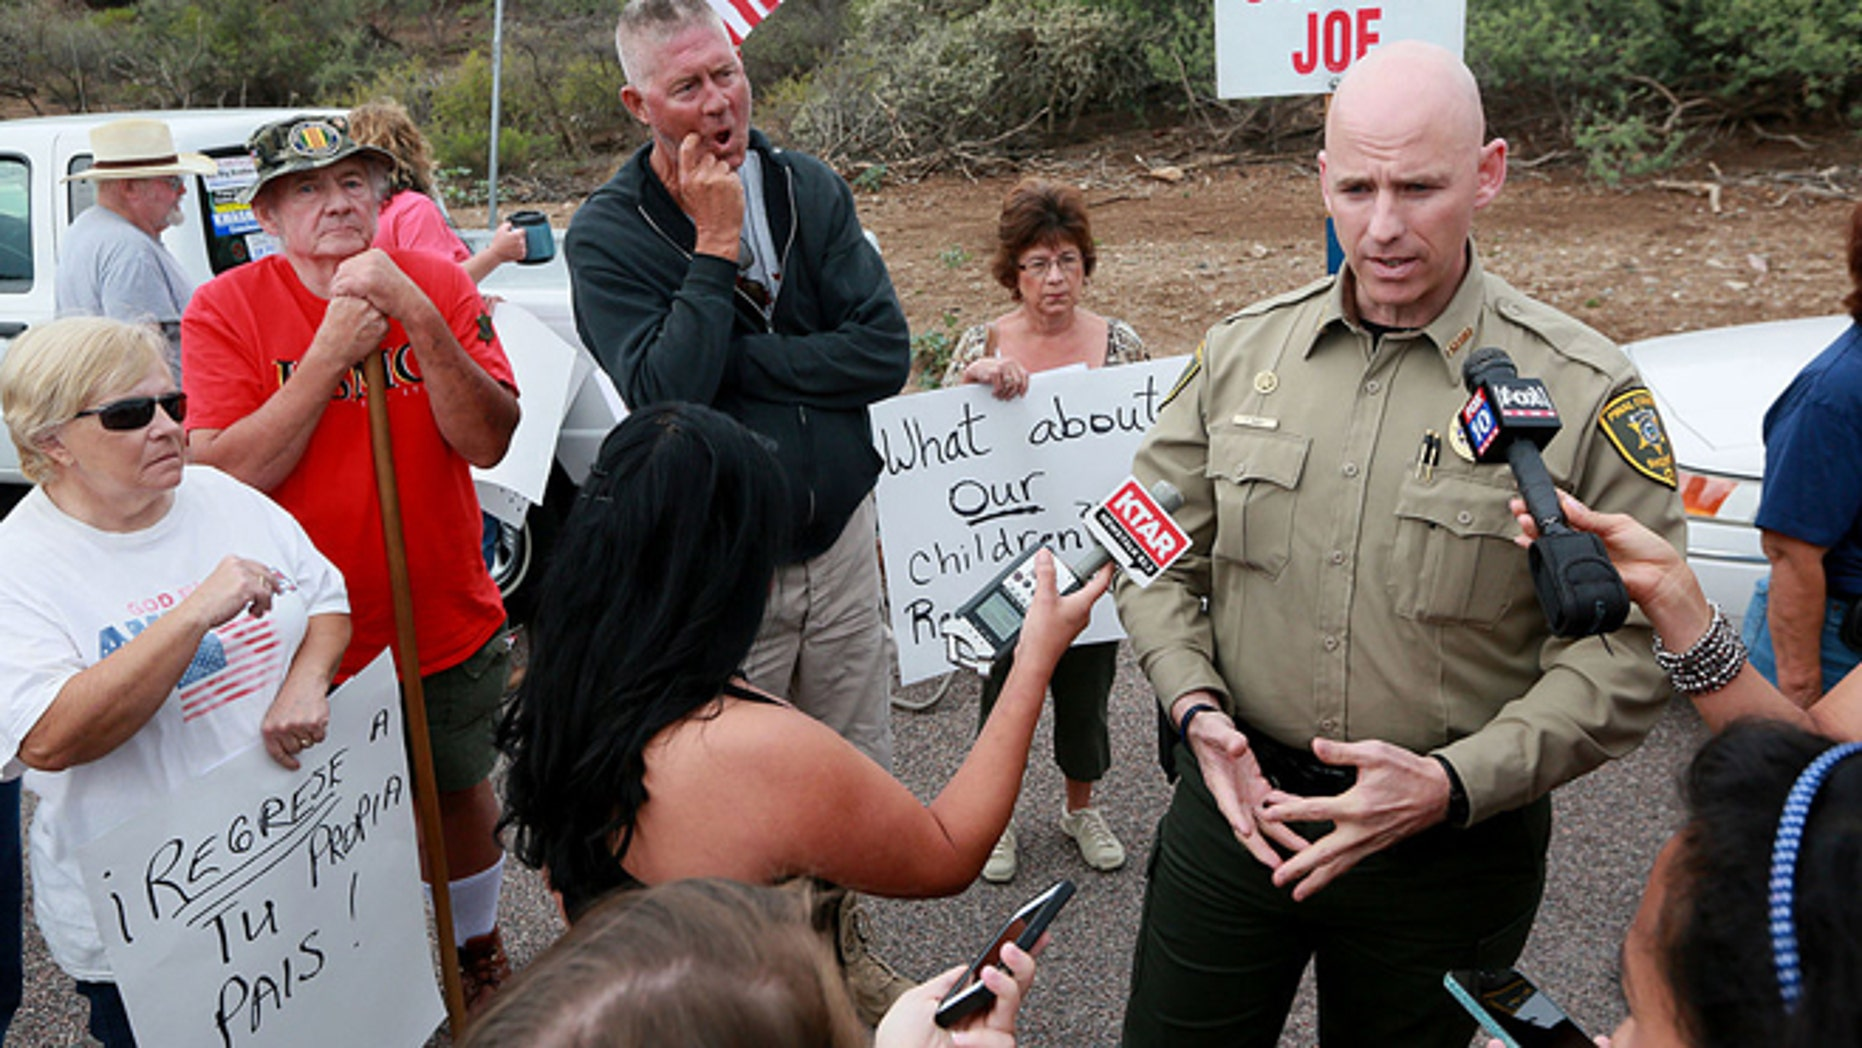 ORACLE, AZ JULY 15: Pinal County Head Sheriff Paul Babeu speaks with anti-immigration activists and the media during a protest along Mt. Lemmon Road in anticipation of buses carrying  illegal immigrants on Jully 15, 2014 in Oracle, Arizona.  About 300 protesters lined the road waiting for a busload of illegal immigrants who are to be housed at a facility in Oracle. (Photo by Sandy Huffaker/Getty Images)